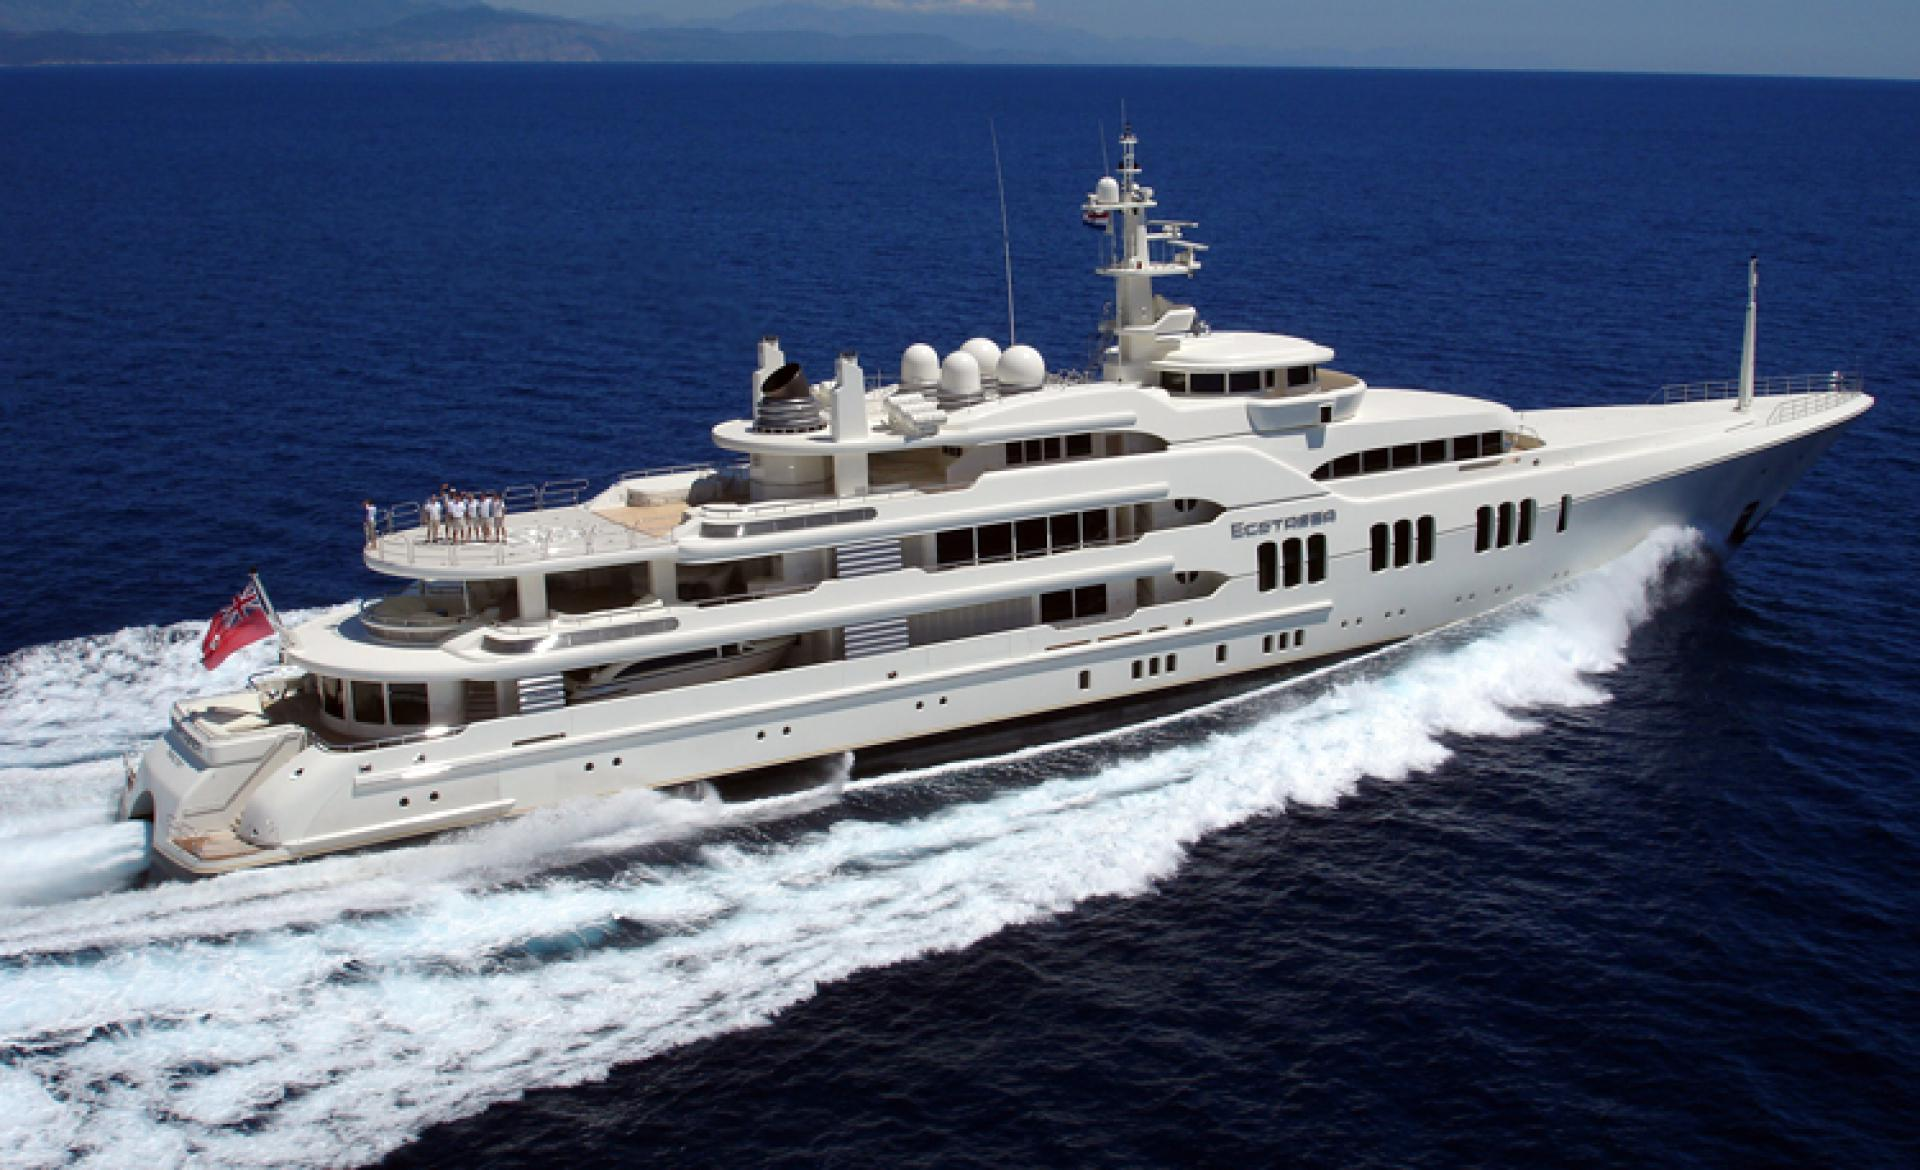 Ultimate Sailing In Style: 29 Most Expensive Luxury Yachts